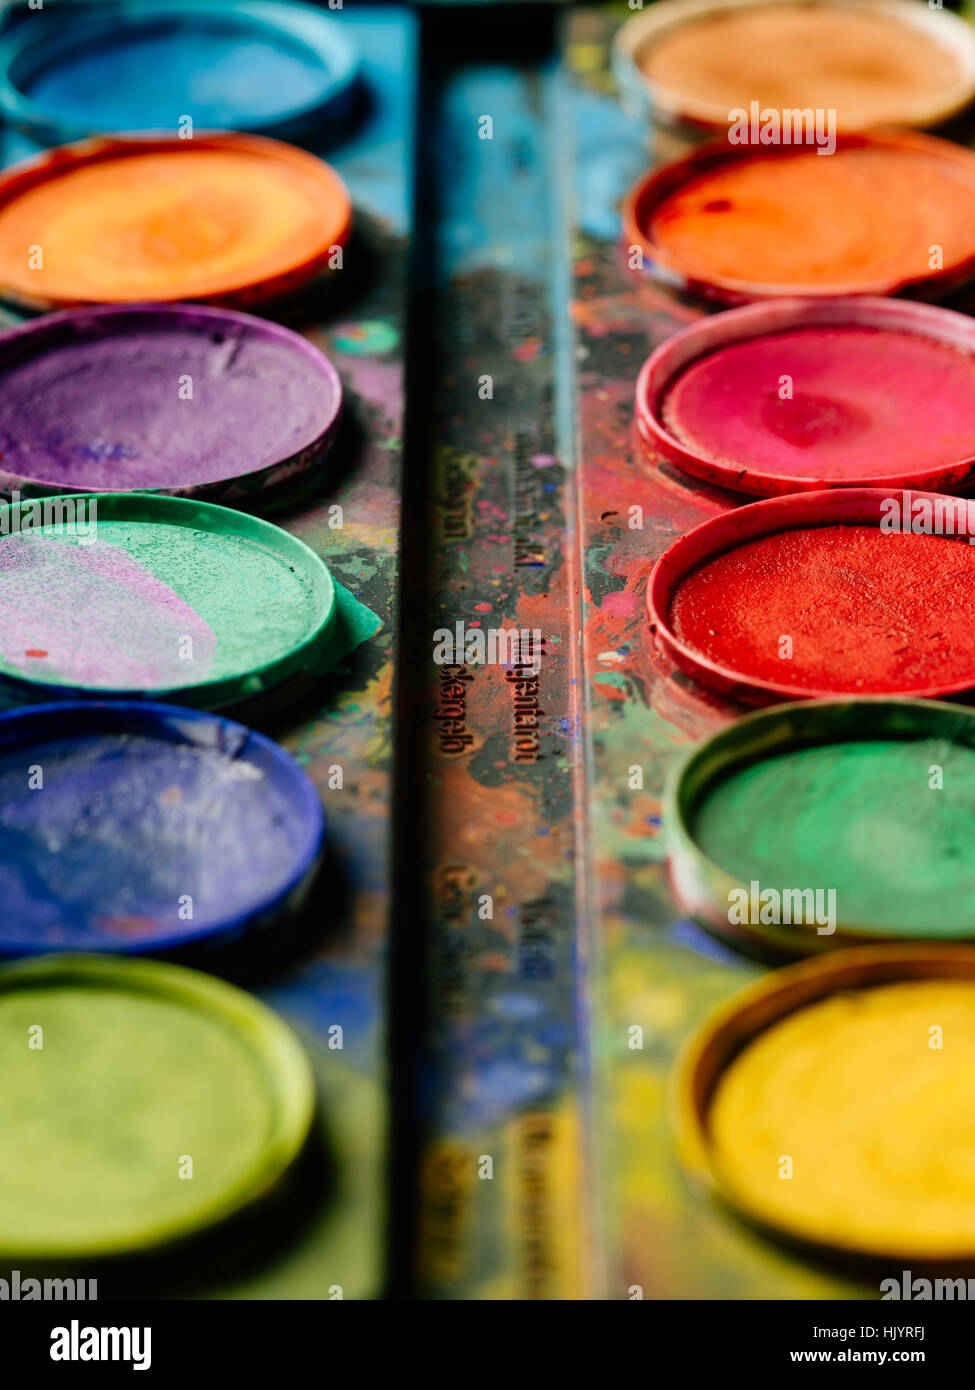 Photo of a palette of watercolor paints on a well-used tray. - Stock Image